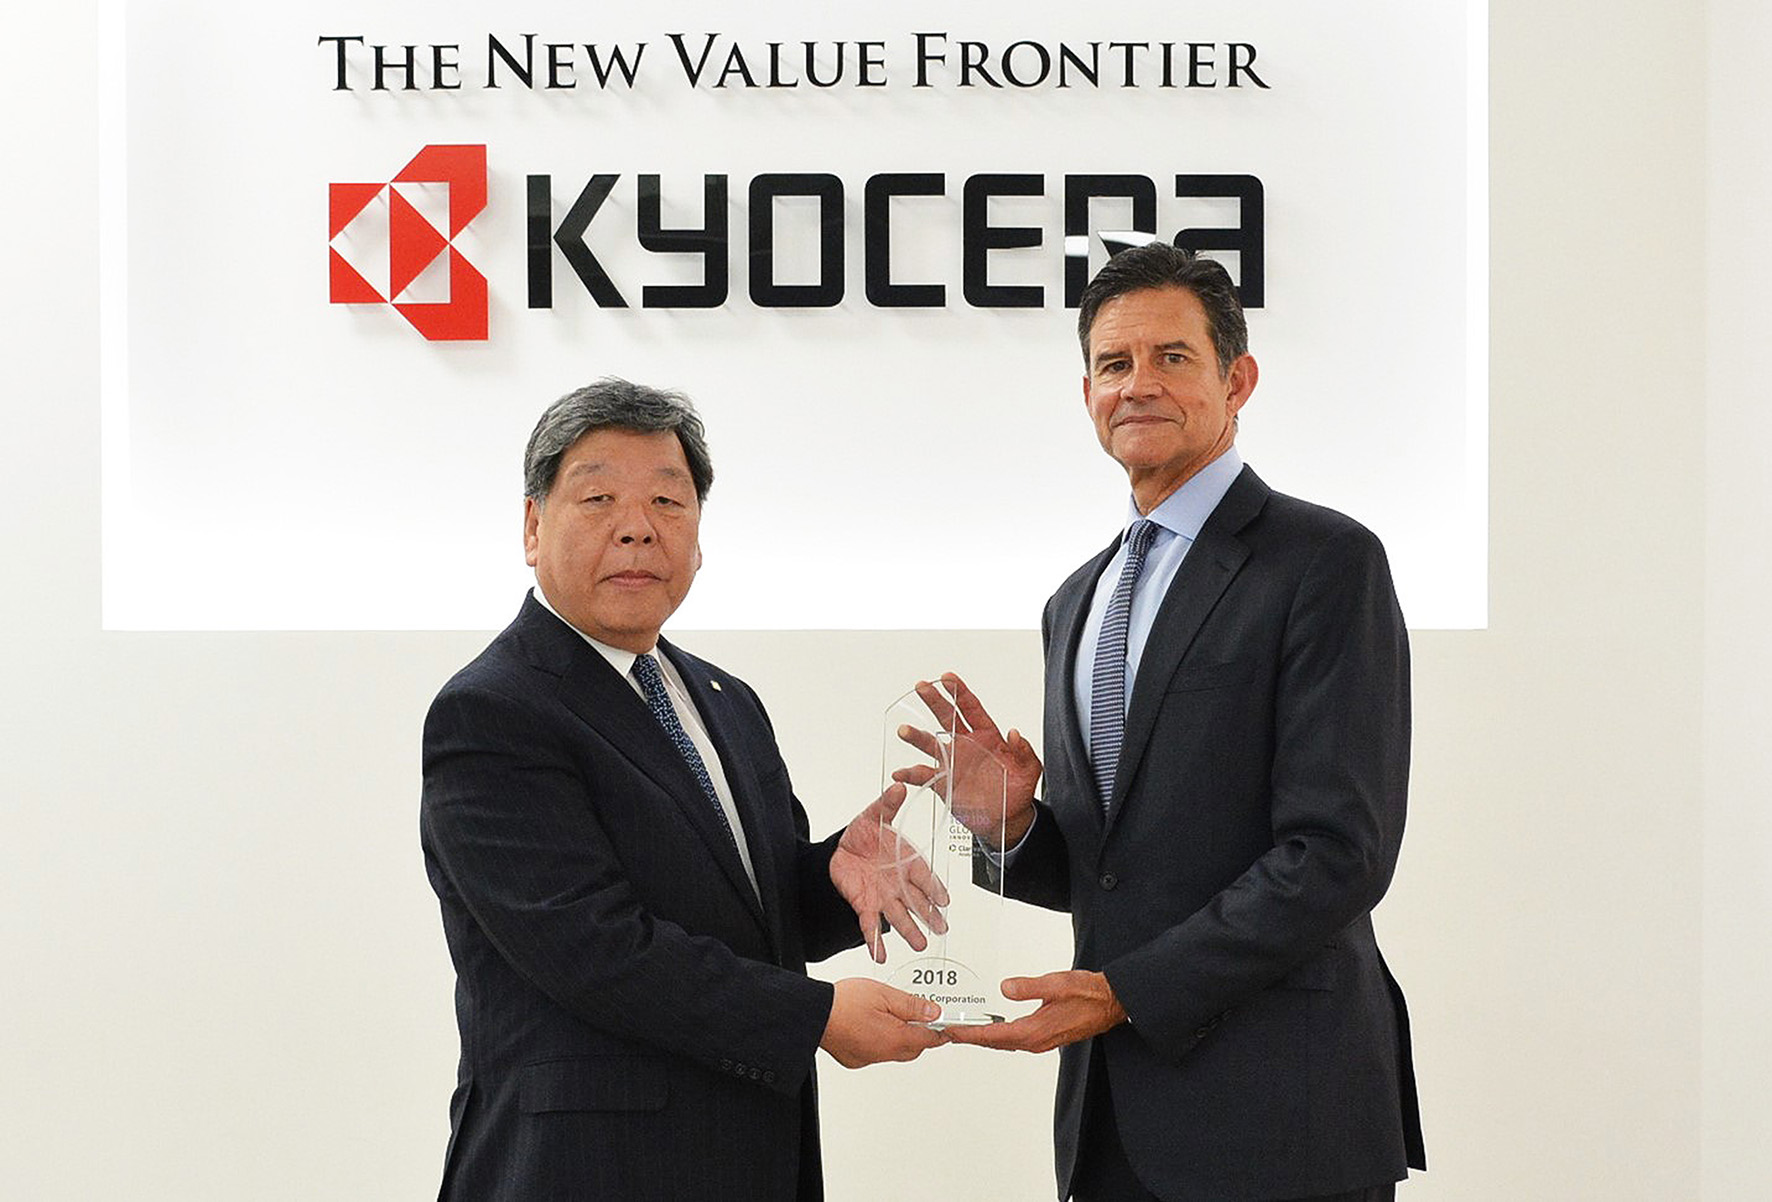 kyocera_named_among_derwent_top_100_global_innovators_by_clarivate_analytics.-cps-32211-image.cpsarticle.jpg